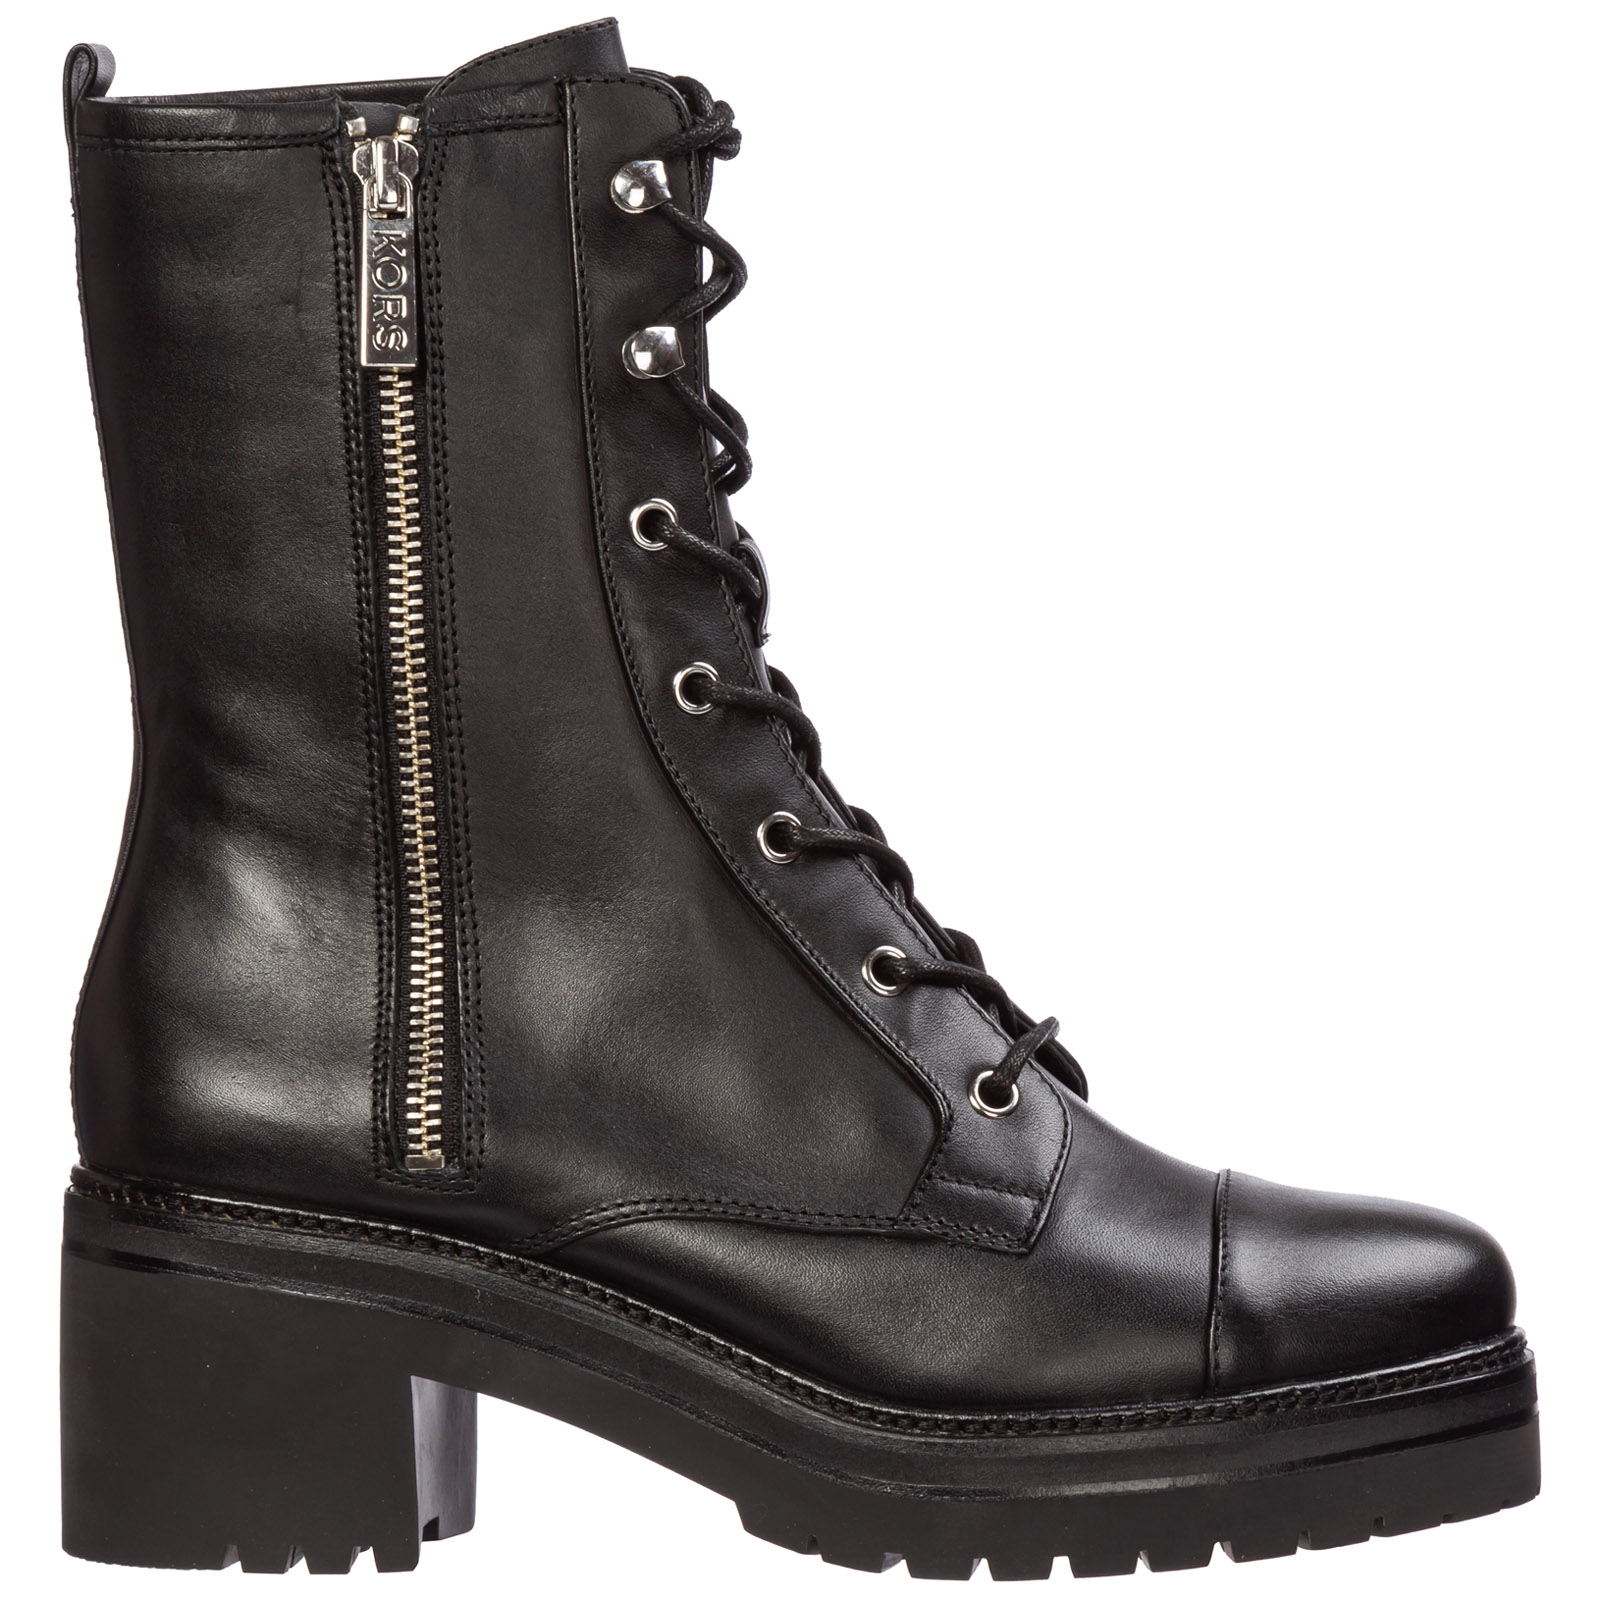 Michael Kors Boots WOMEN'S LEATHER ANKLE BOOTS BOOTIES ANAKA